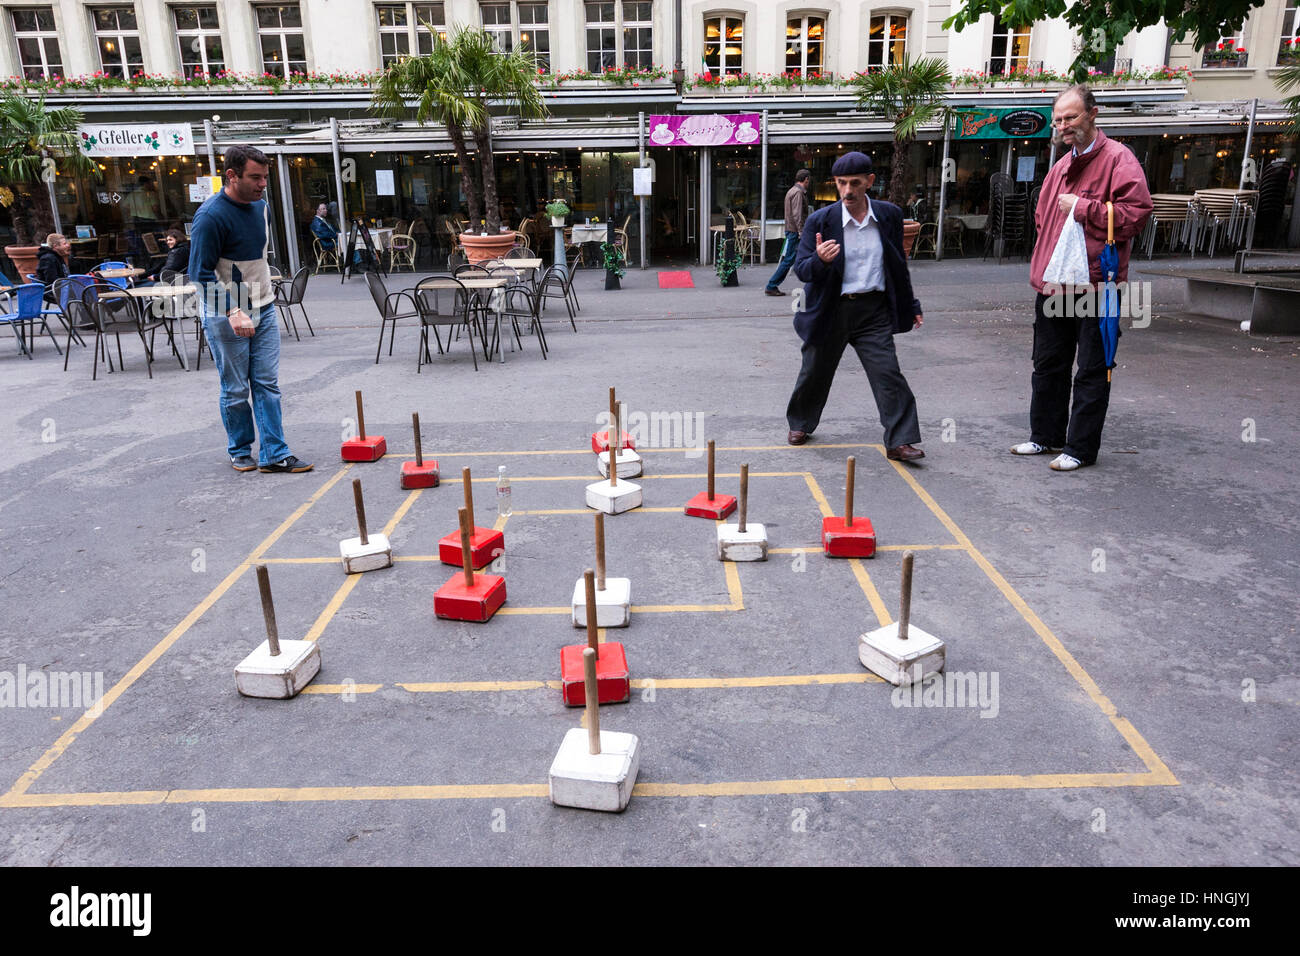 Locals playing street game looks like Nine Men Morris, Bern, Switzerland Stock Photo